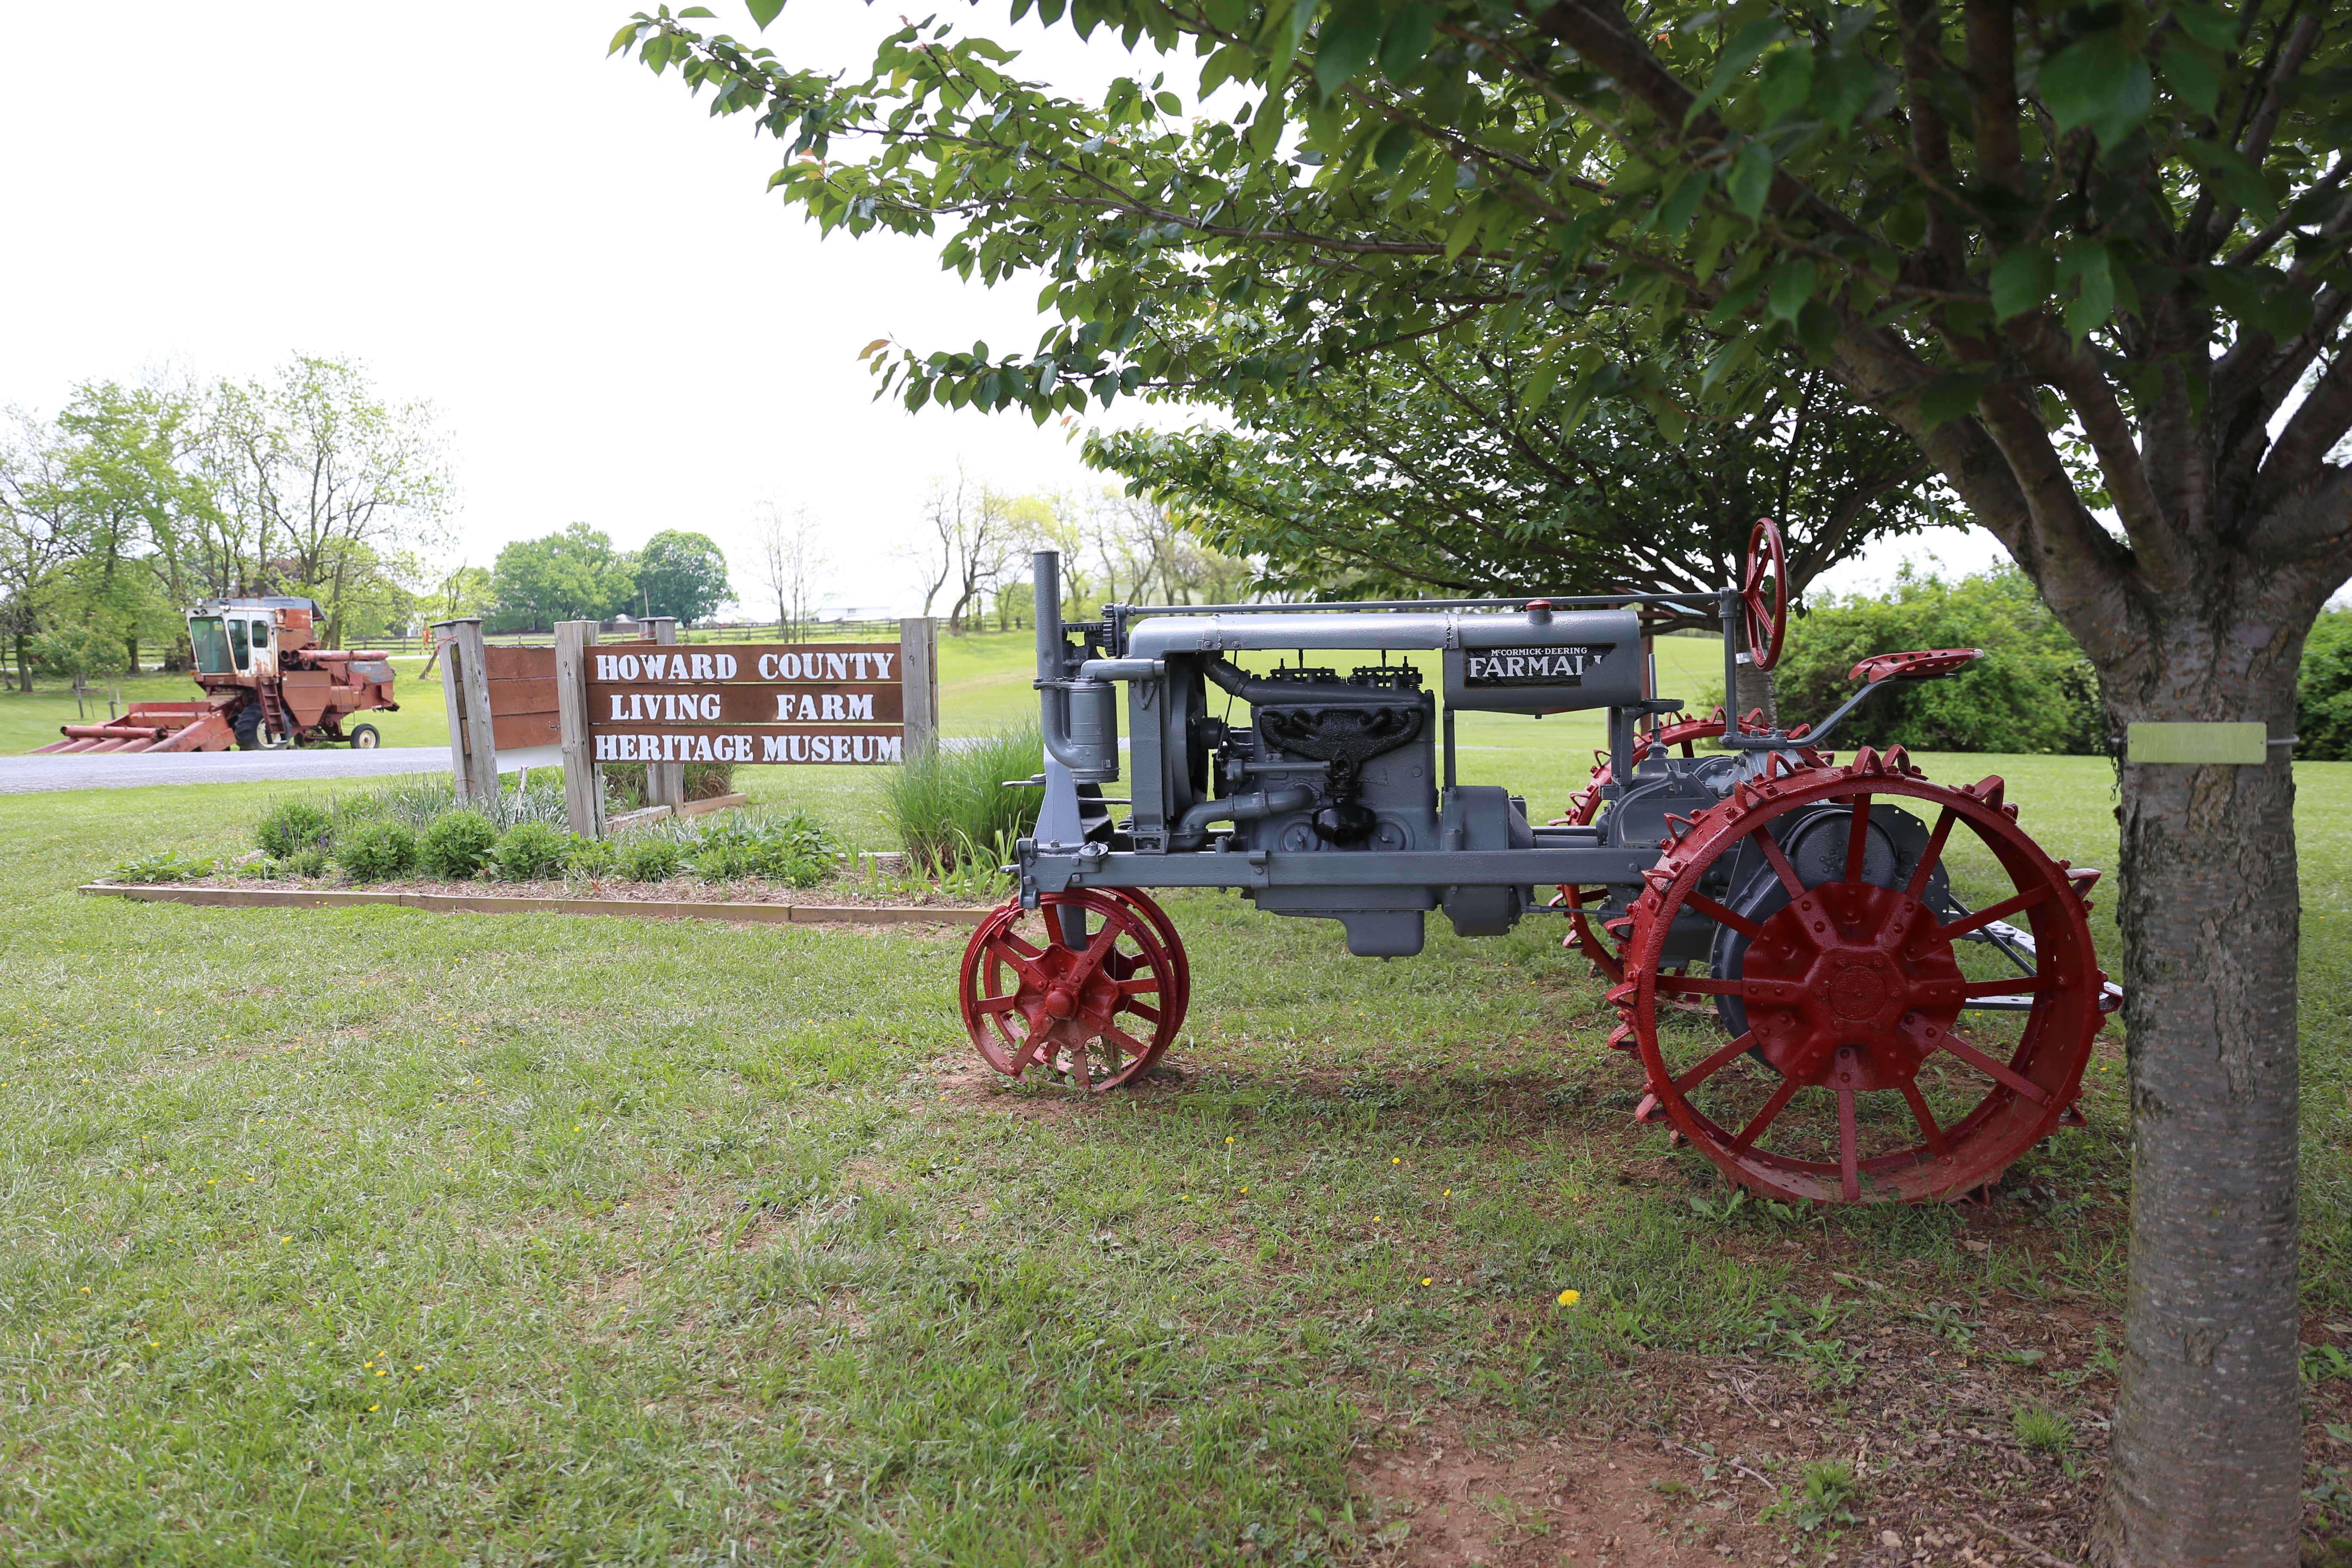 Howard County Living Farm Heritage Museum | West Friendship, MD 21794